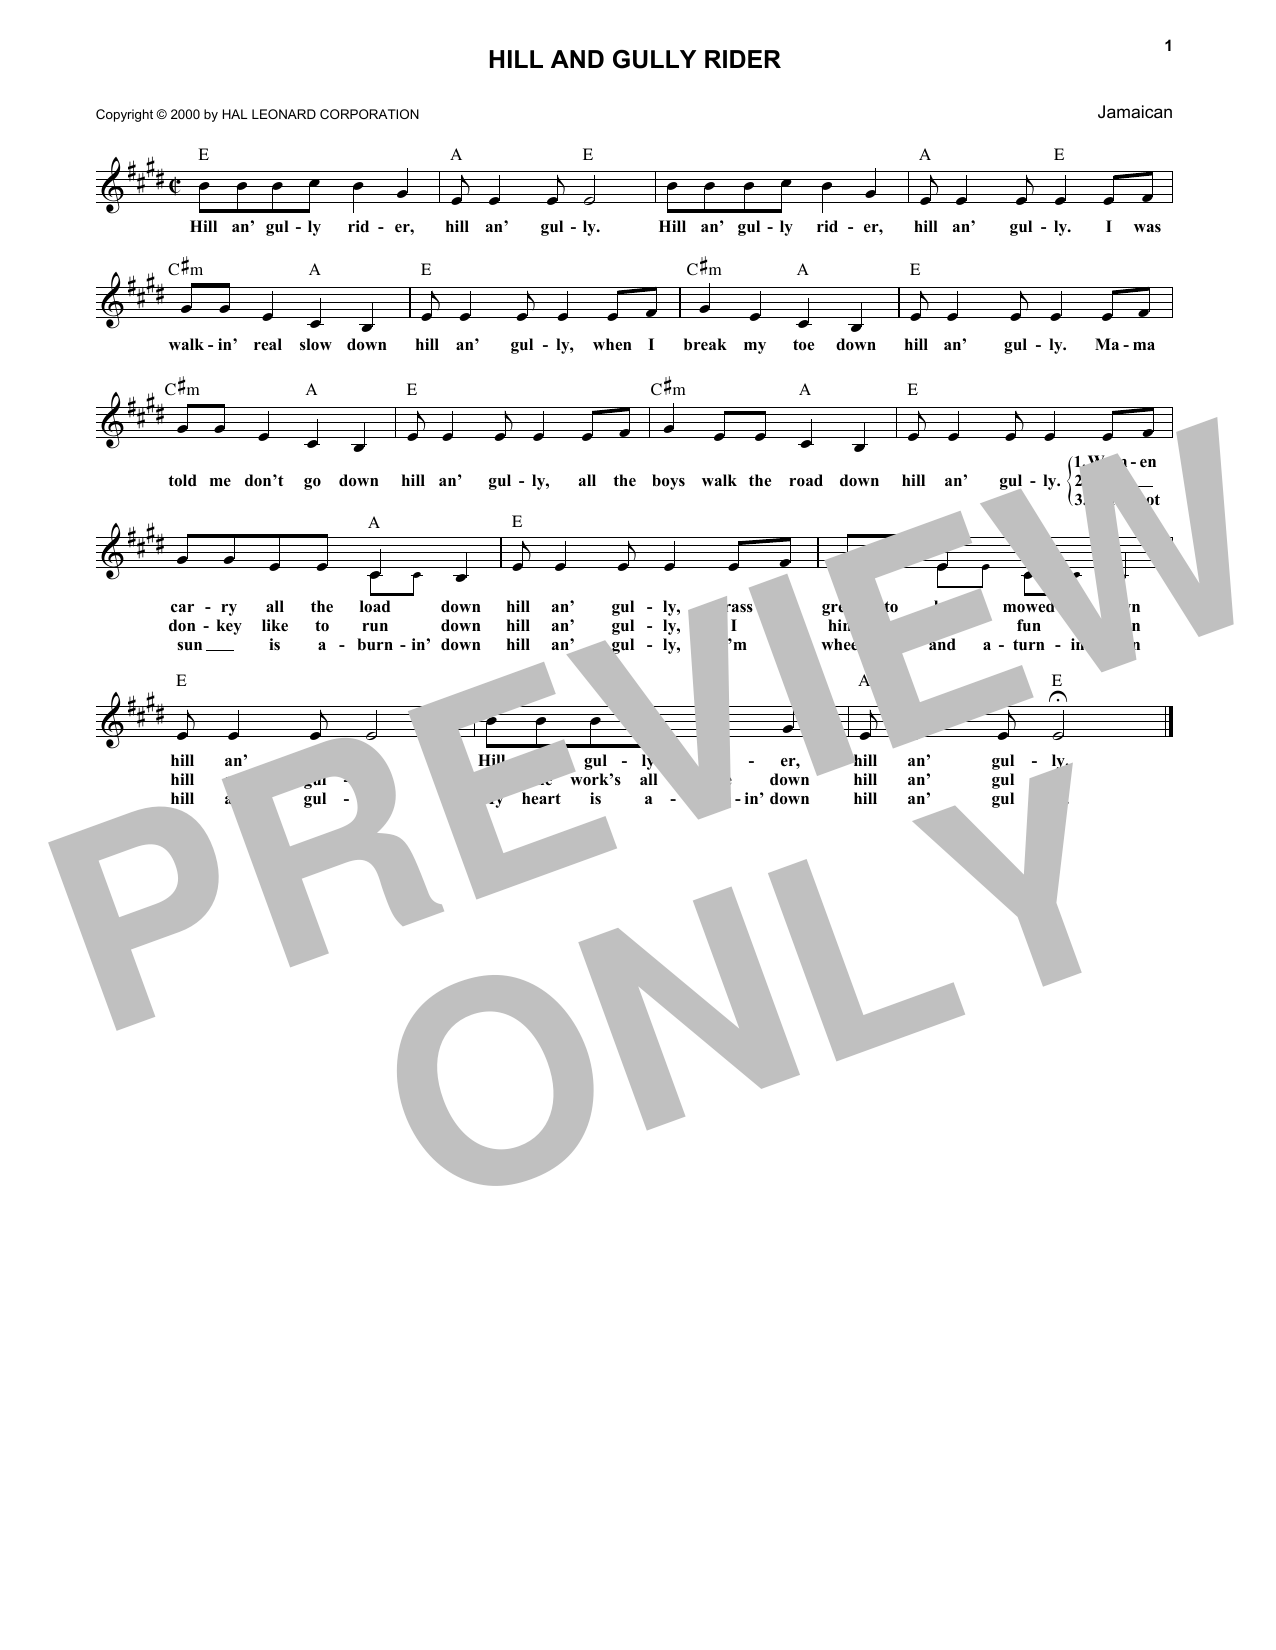 Caribbean Hill And Gully Rider sheet music notes and chords - download printable PDF.